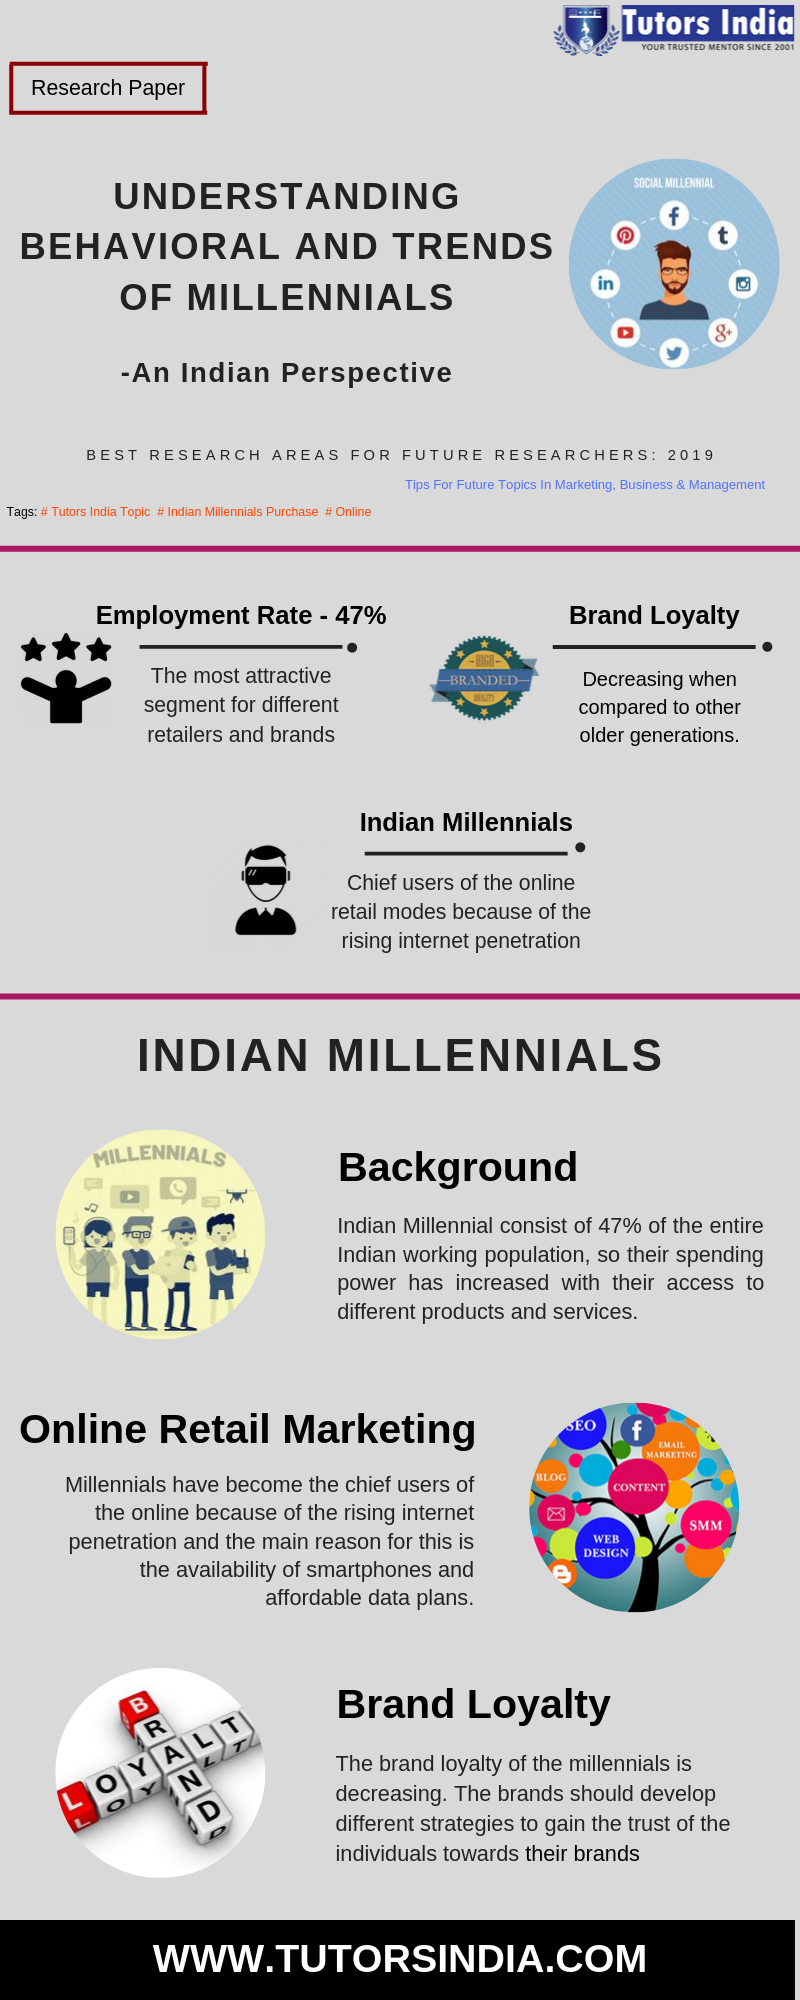 Understanding Behavioral And Trend Of Millennial Best Research Area For Future Researcher 2019 Busines Management Retail Dissertation Topics